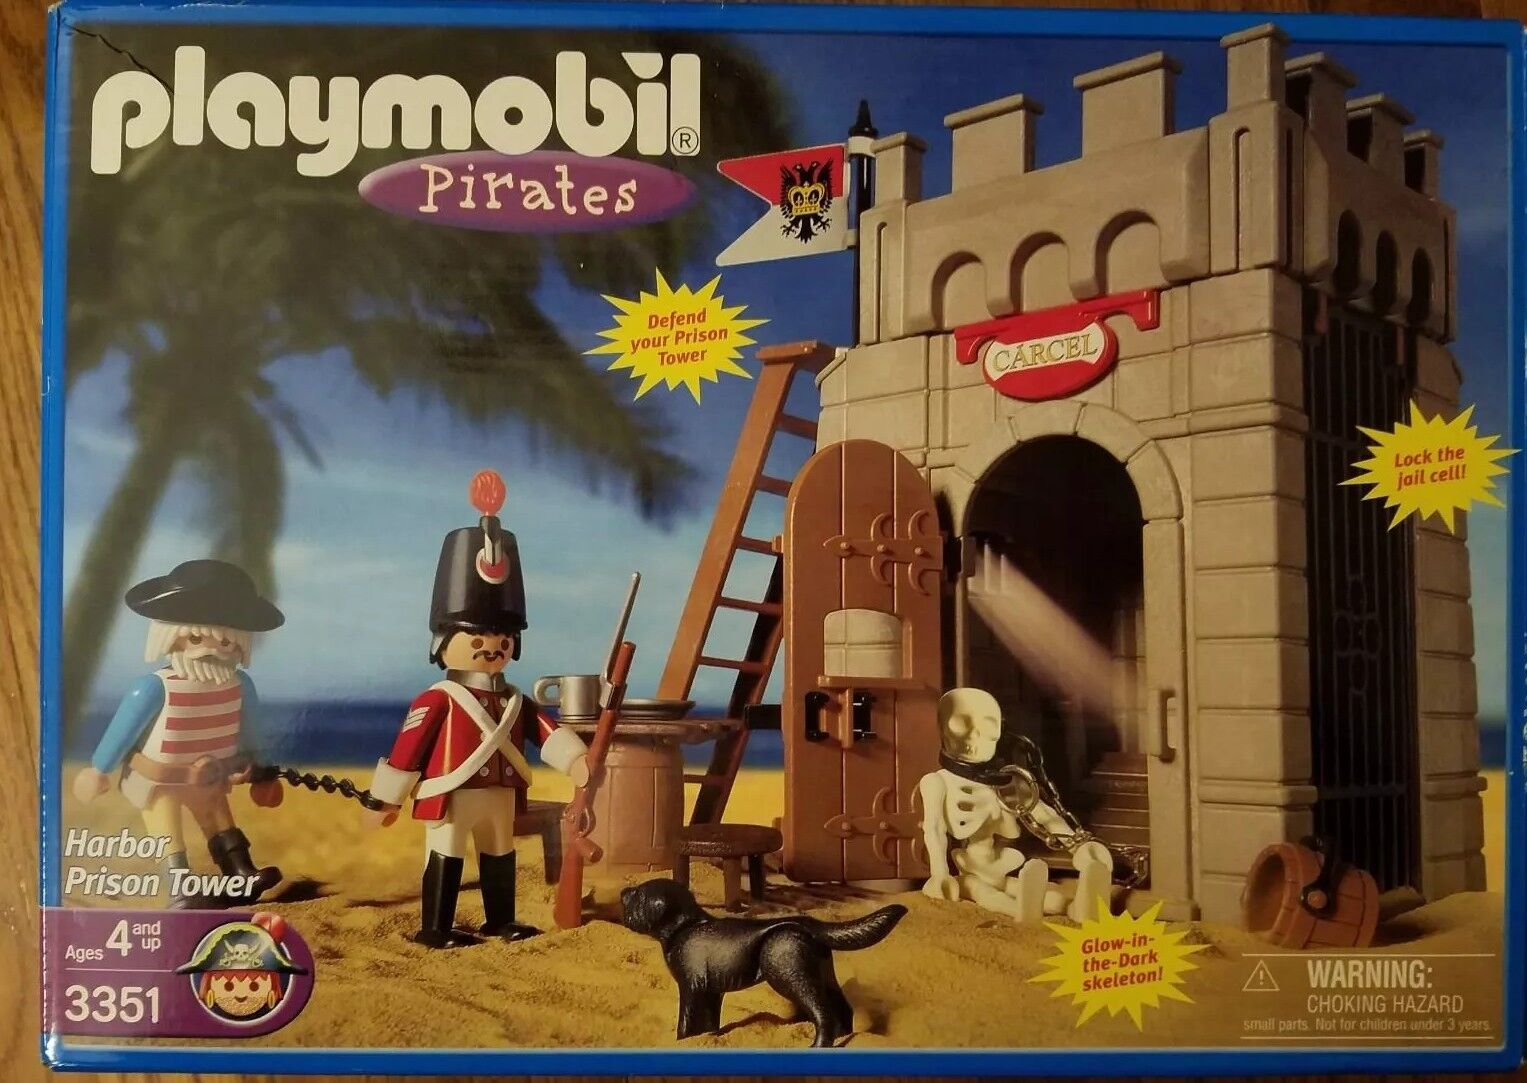 Playmobil Pirates Harbor Prison Tower 3351